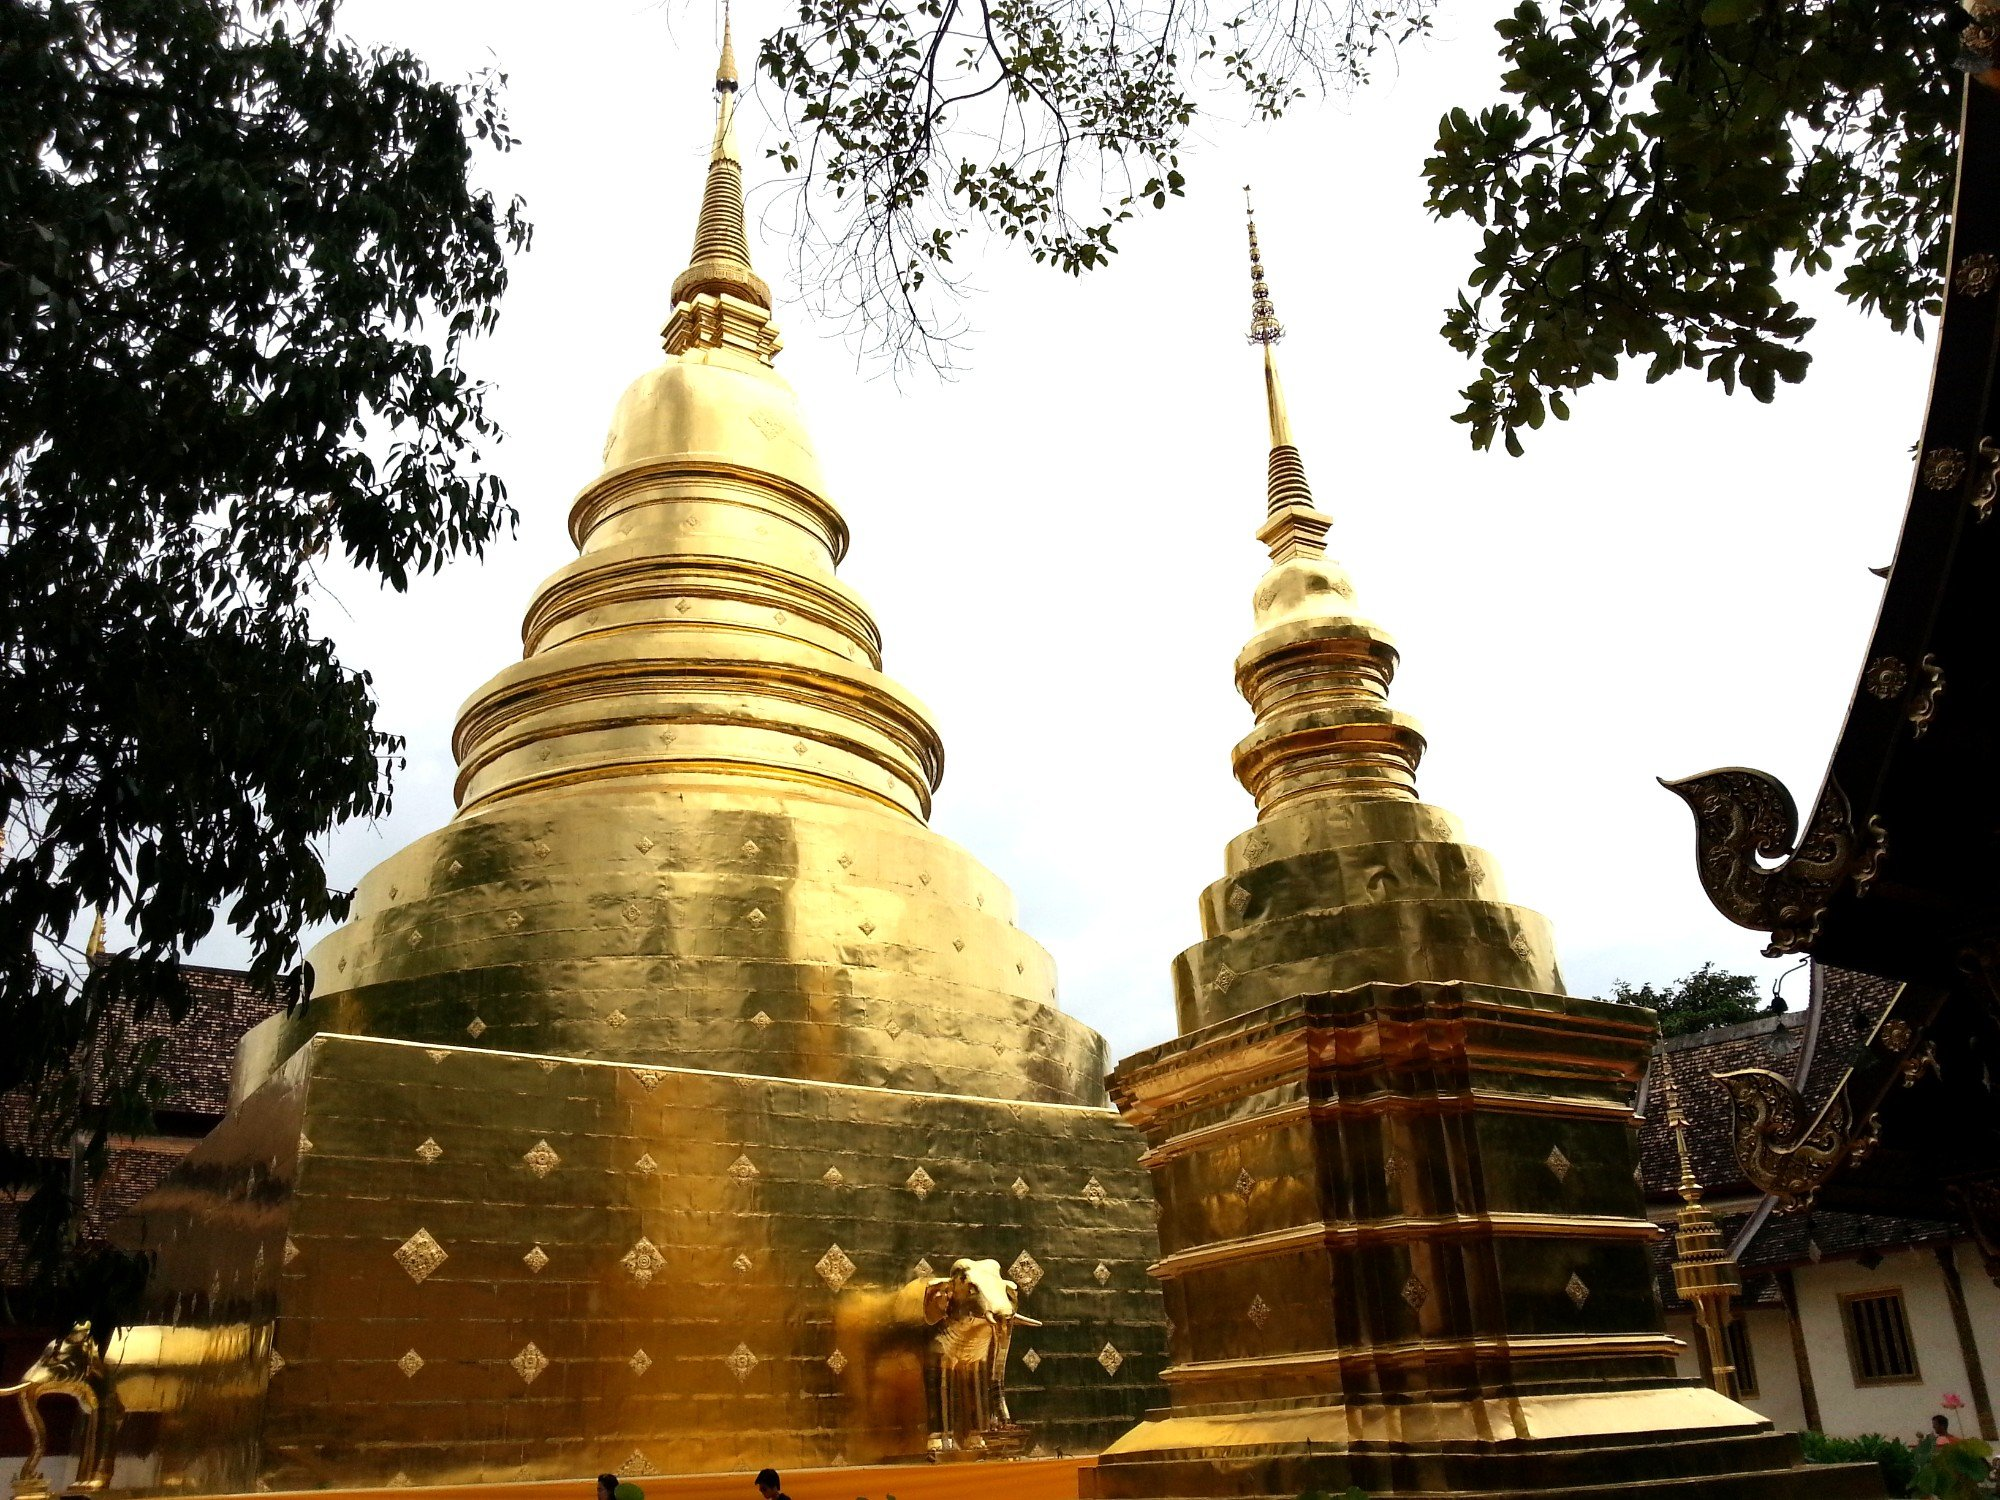 Main chedi at Wat Phra Singh